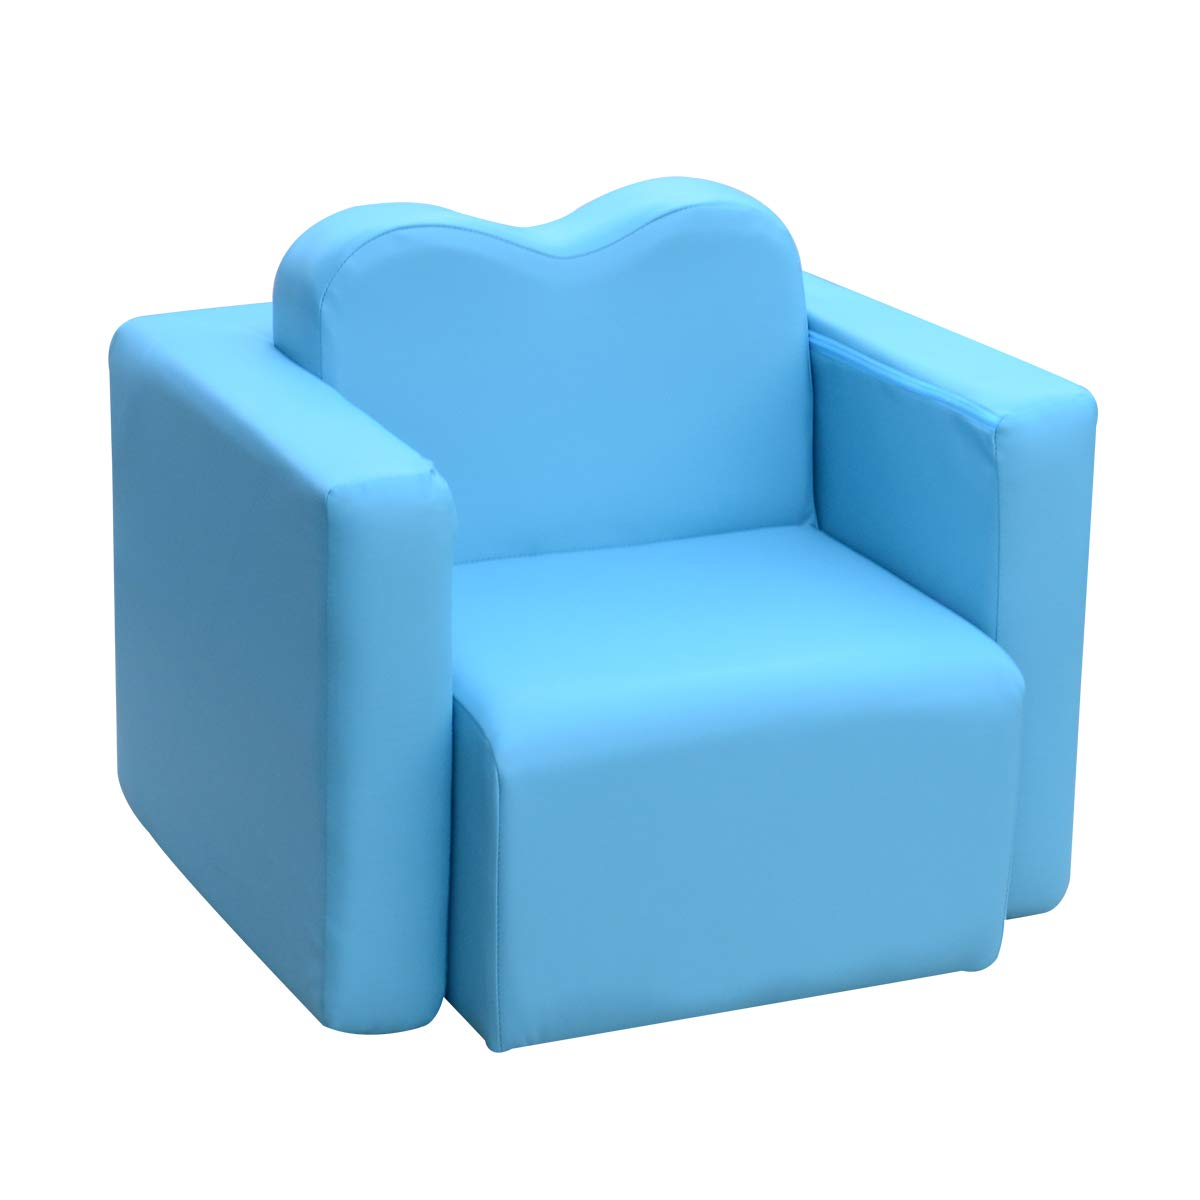 Lightweight Design Kids Sofa 2-in-1 Multi-Functional Children Table & Chair Set Living Room Furniture Armrest Couch for Boys & Girls Blue Favciuove